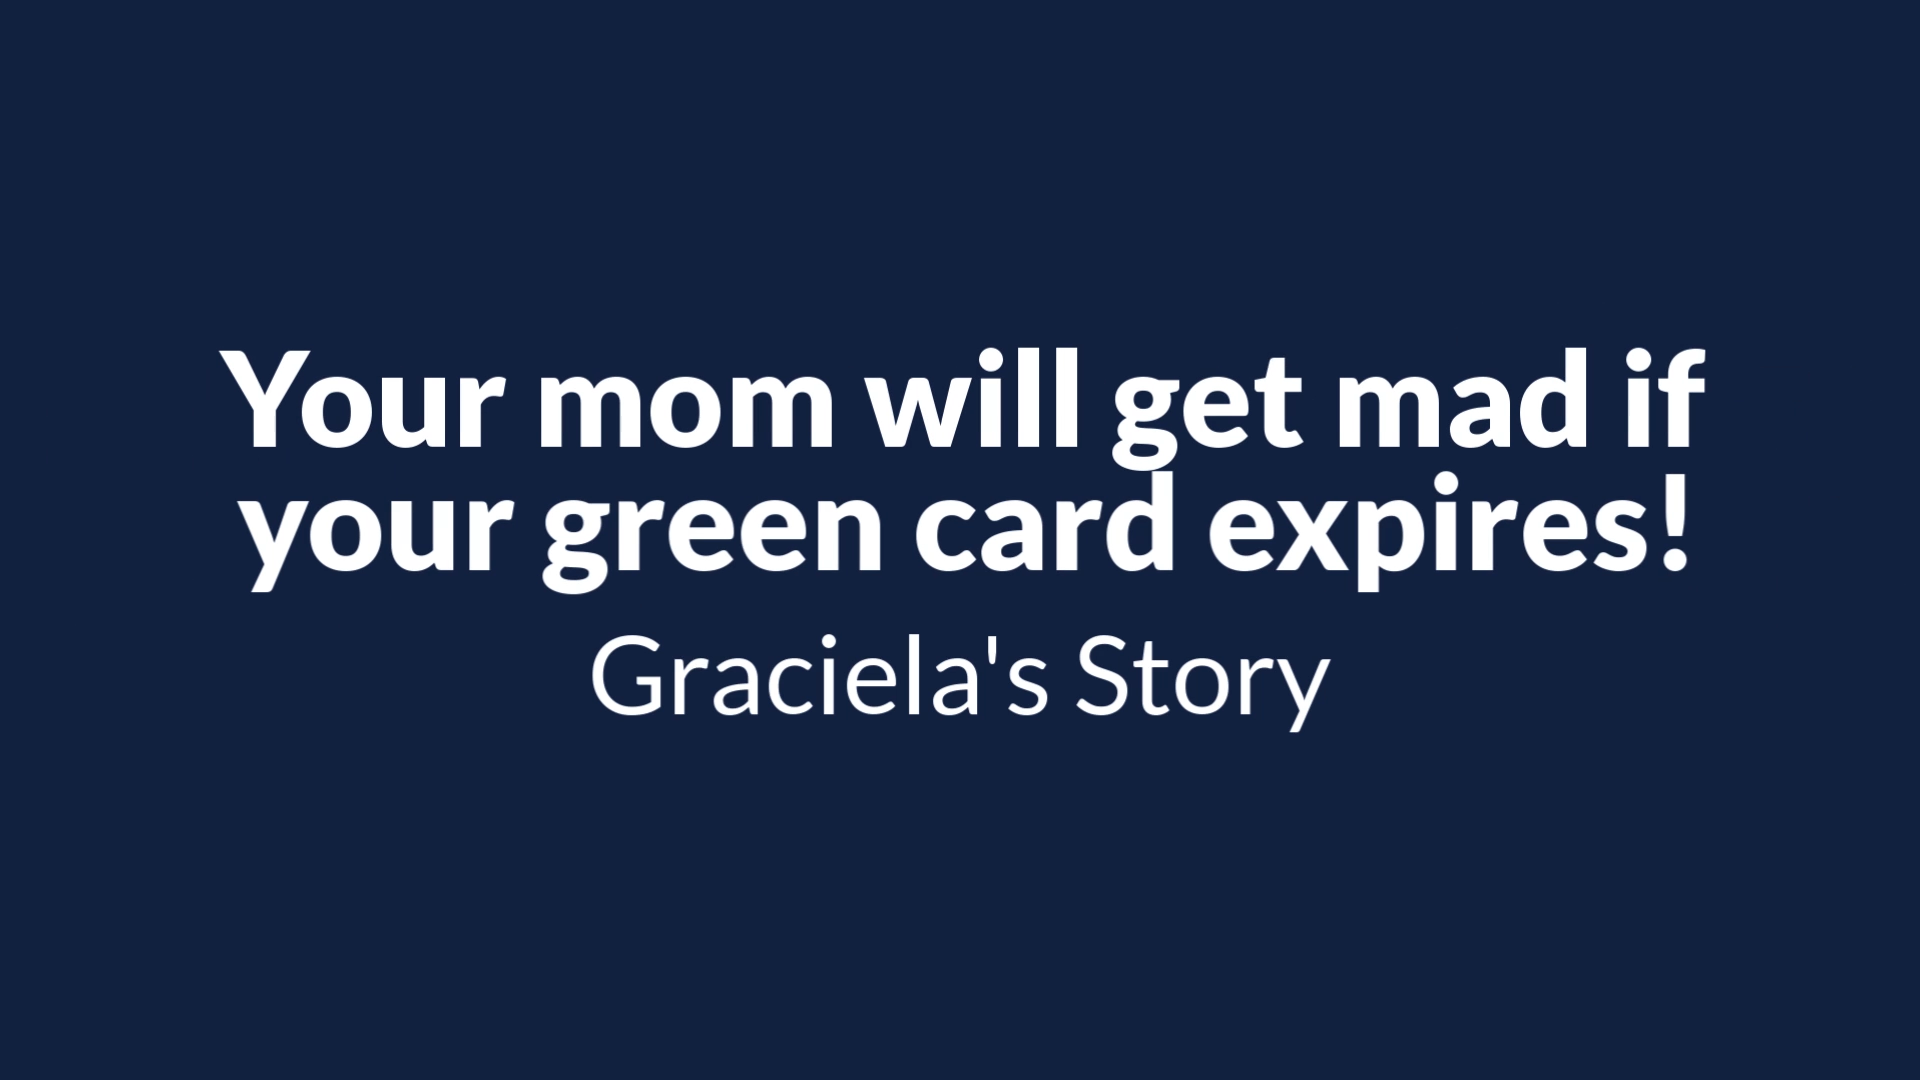 Renewing your green card is important. Graciela trusted FileRight to get the application done.